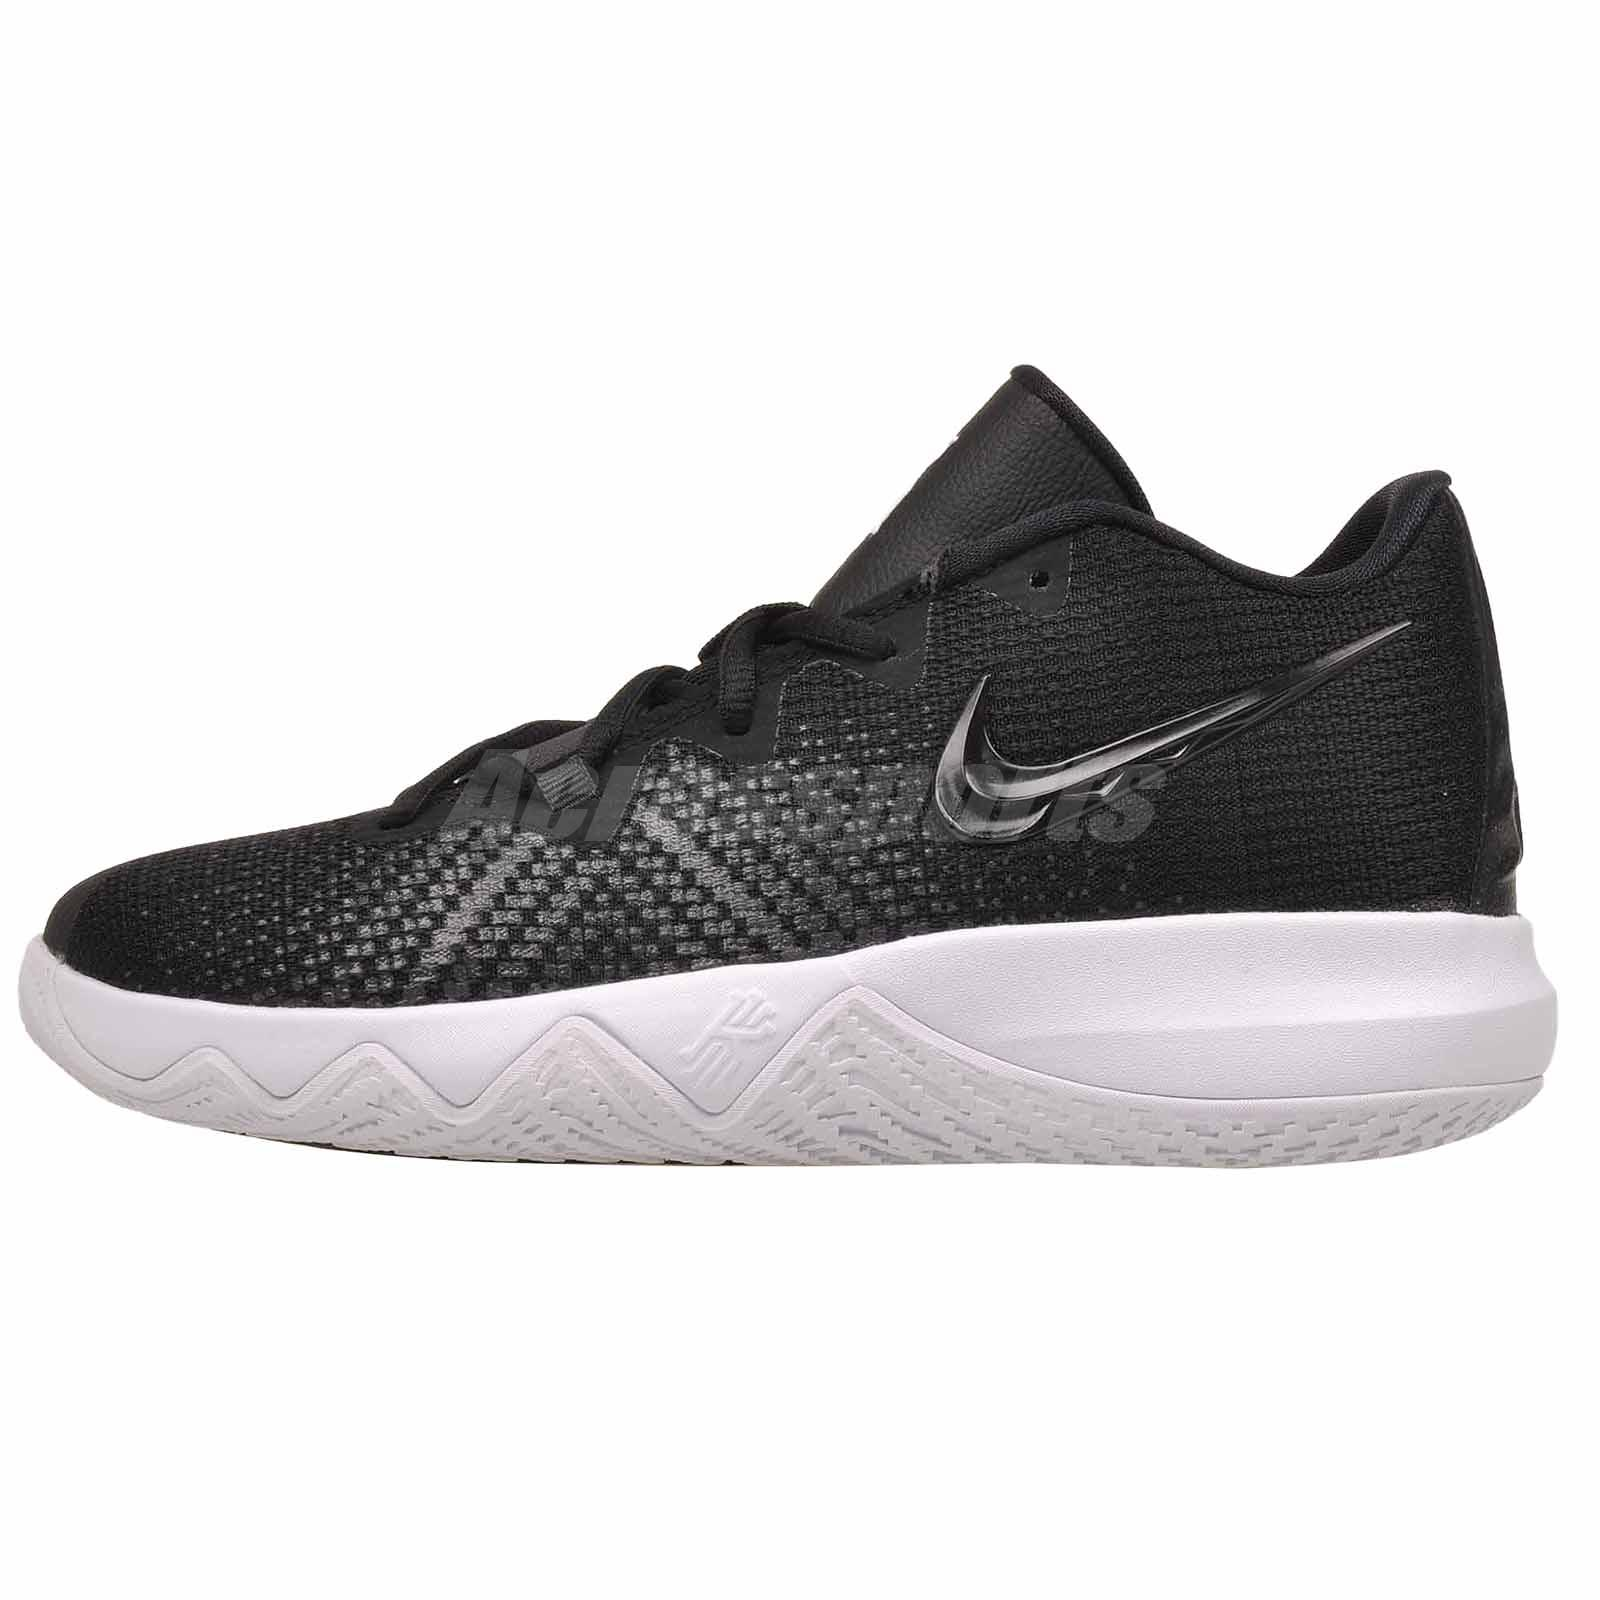 cheap for discount ce8dc 06524 Nike Kyrie Flytrap GS Basketball Kids Youth Shoes Black White AA1154-001